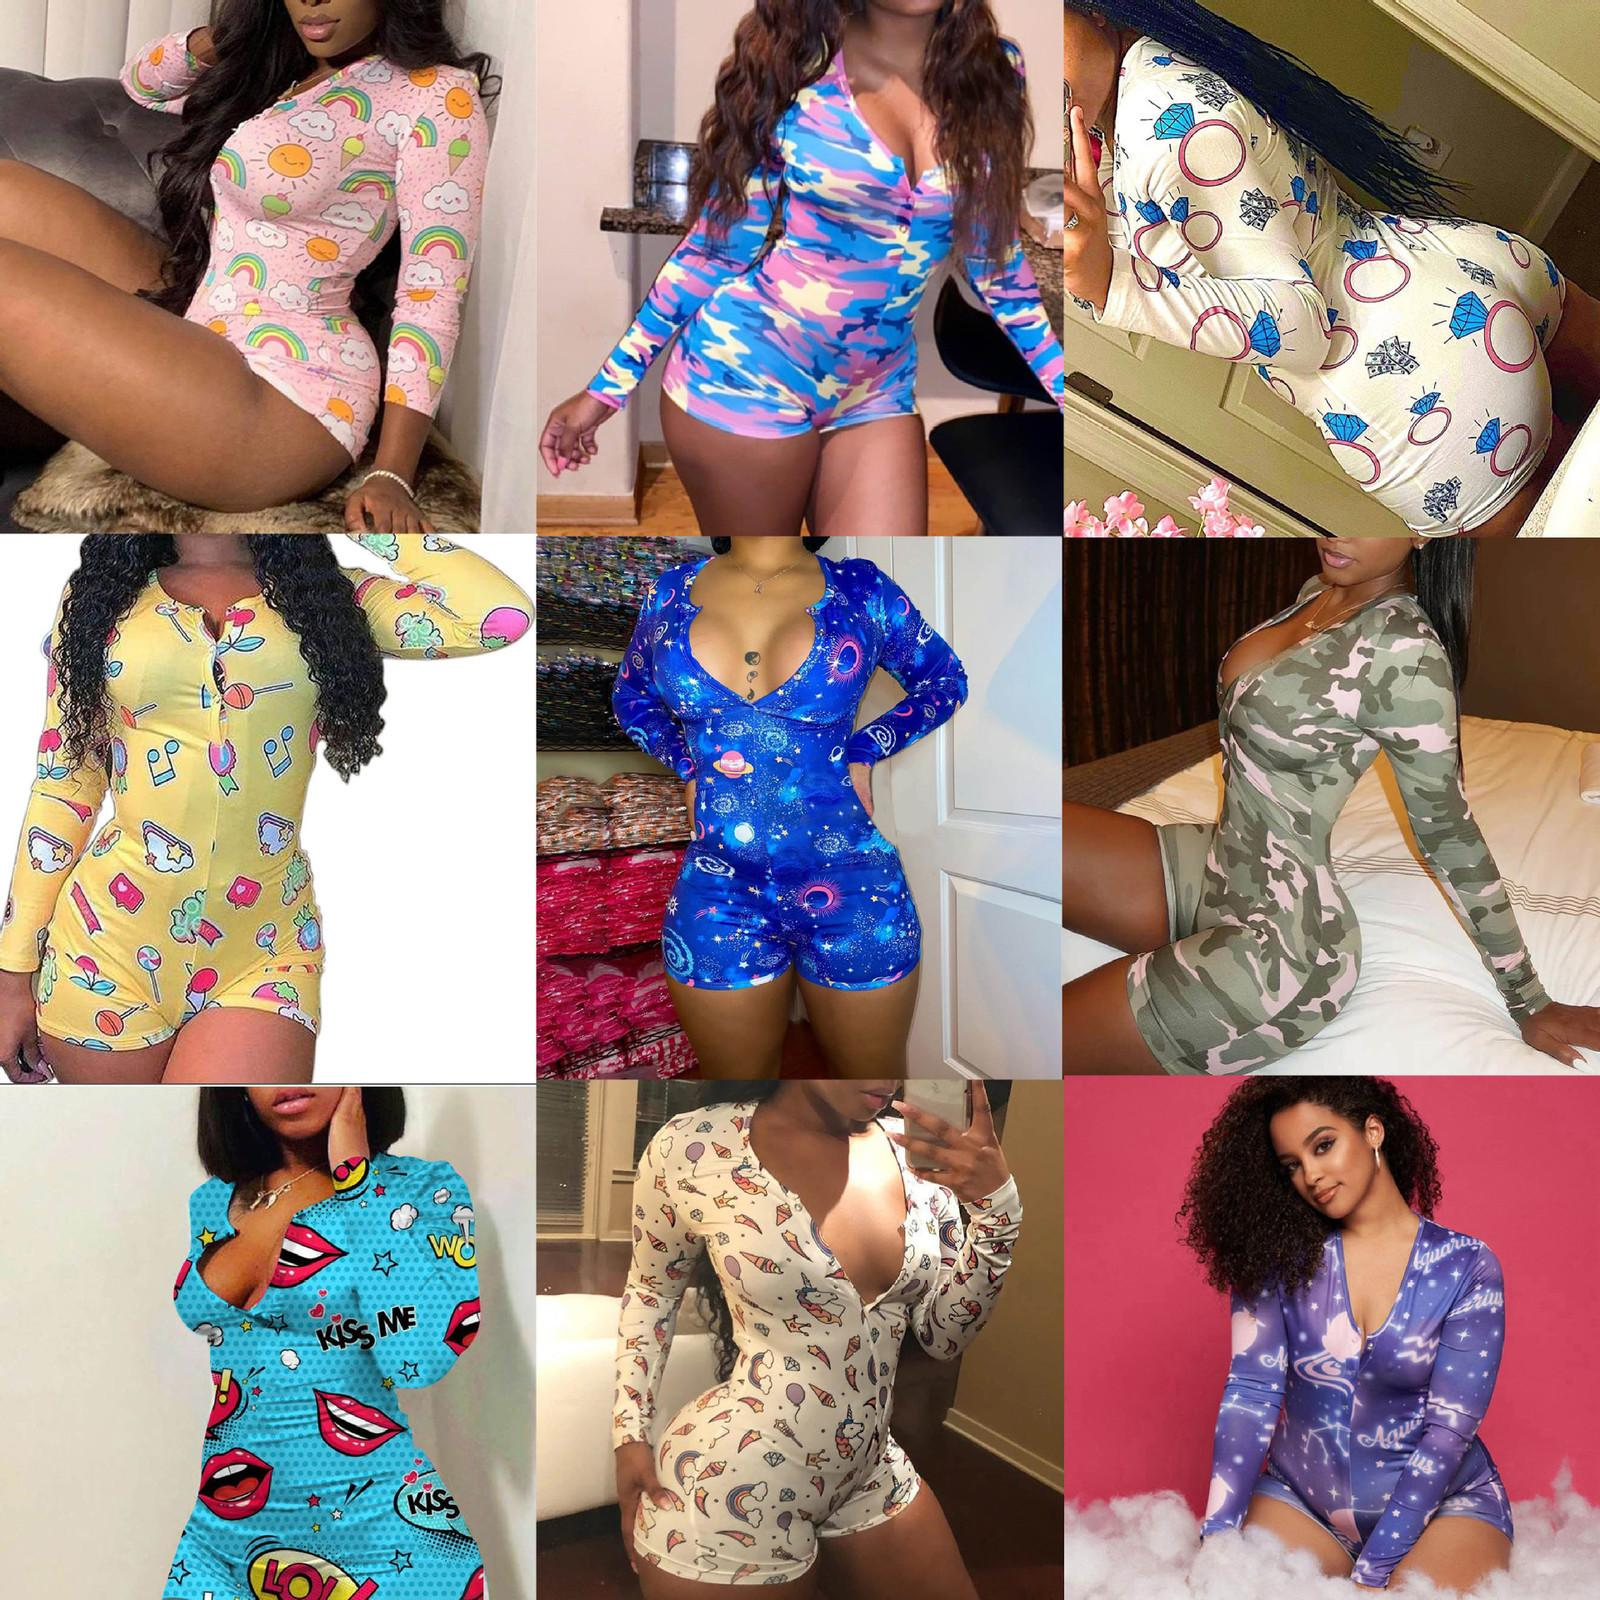 New Adult Sexy Sexy V-neck camouflage lipstick Print Long Sleeve Shorts tights women Onesies Sleepwear Long Sleeve Jumpsuits